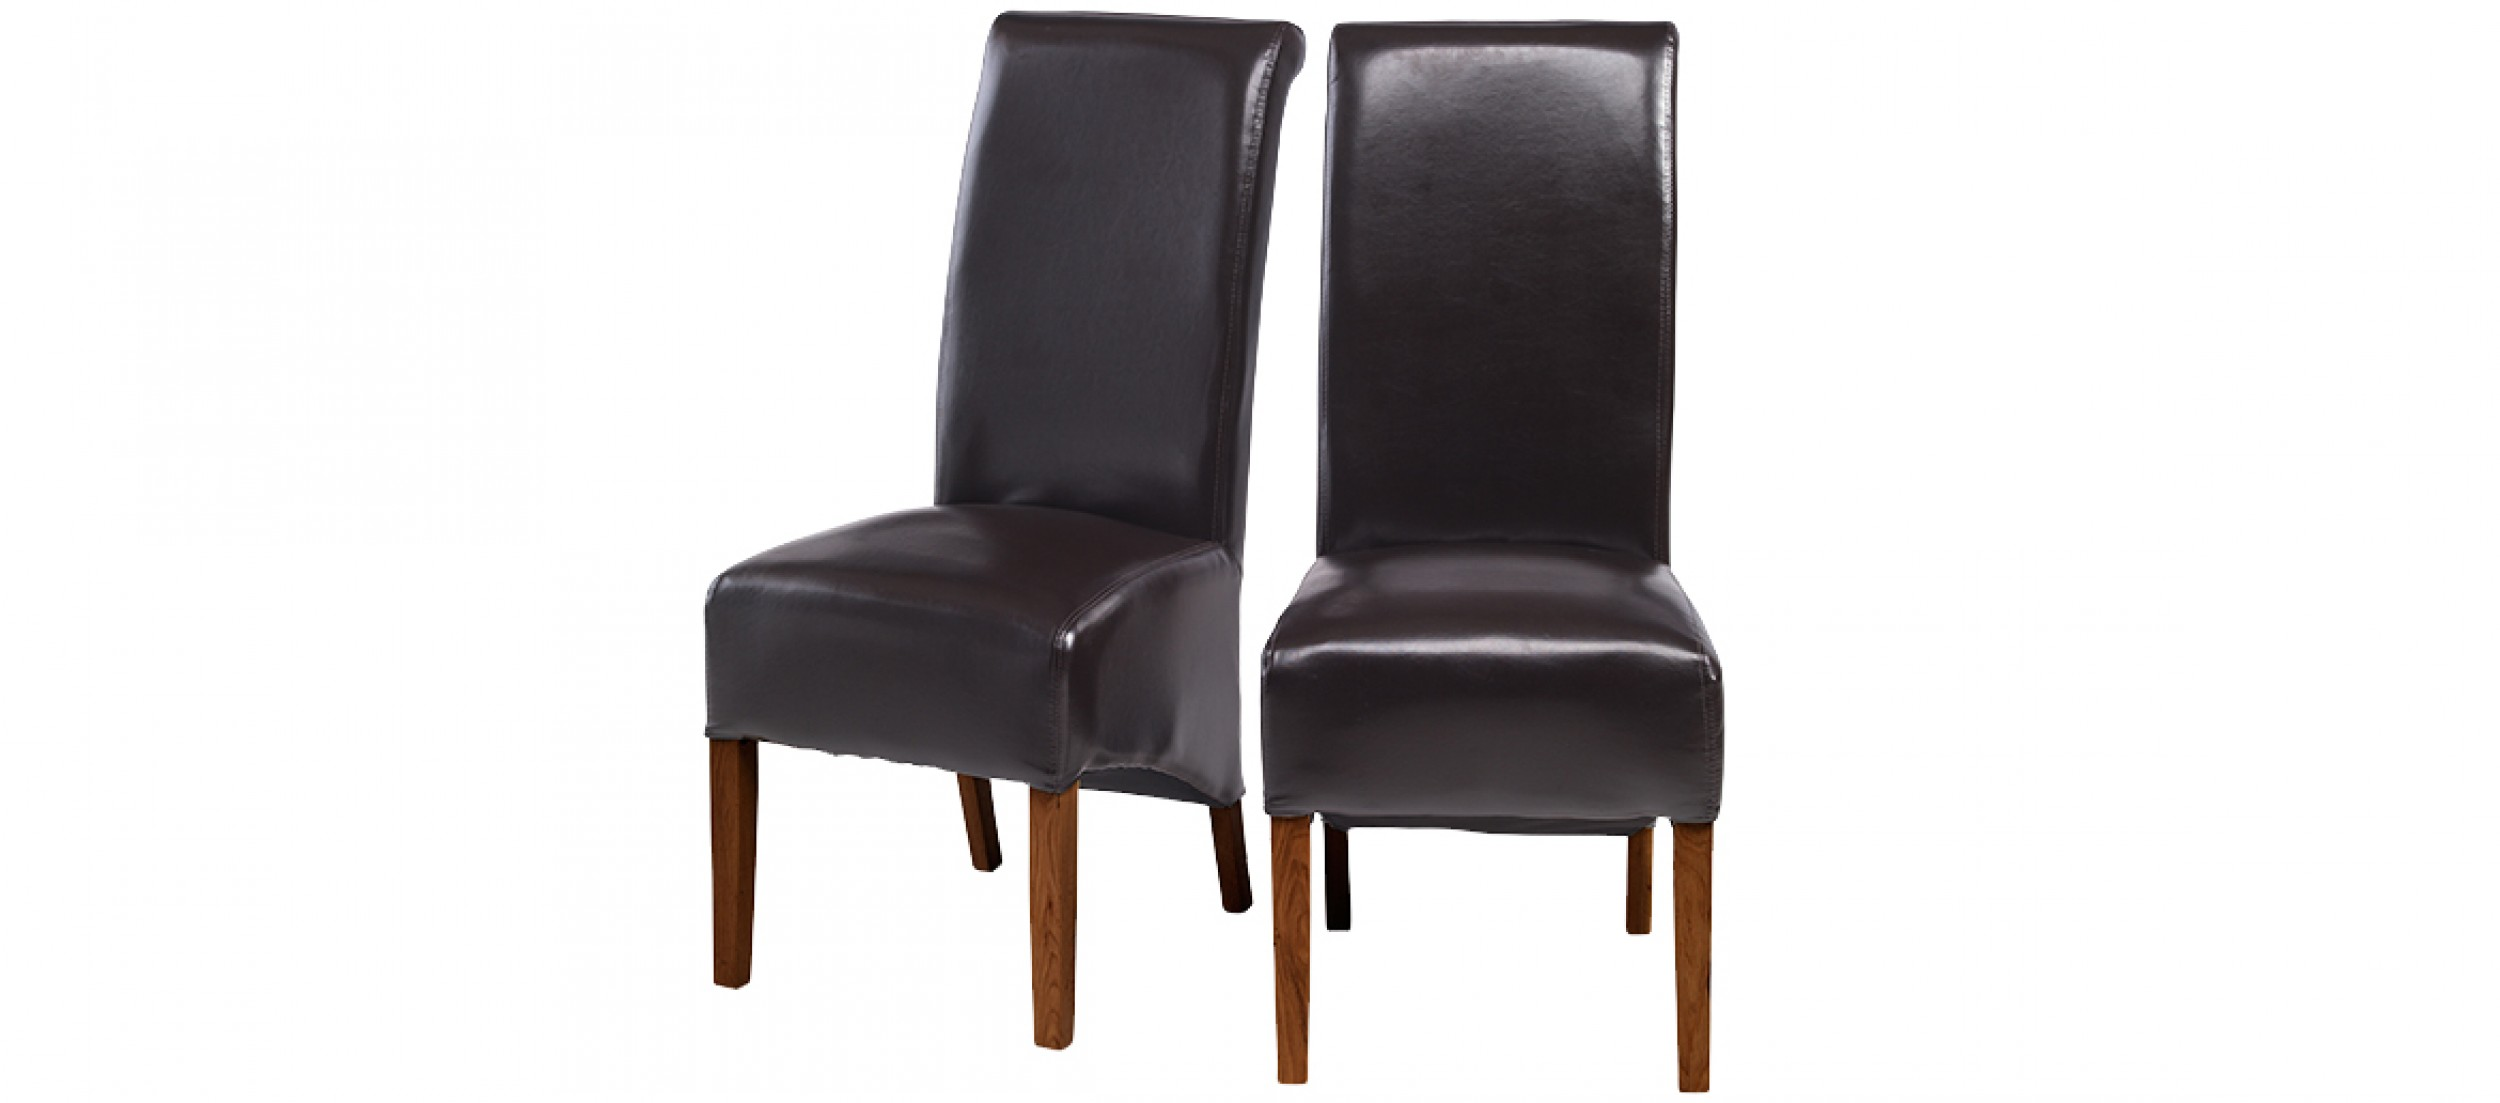 Cube bonded leather dining chairs brown pair quercus for Dining seats